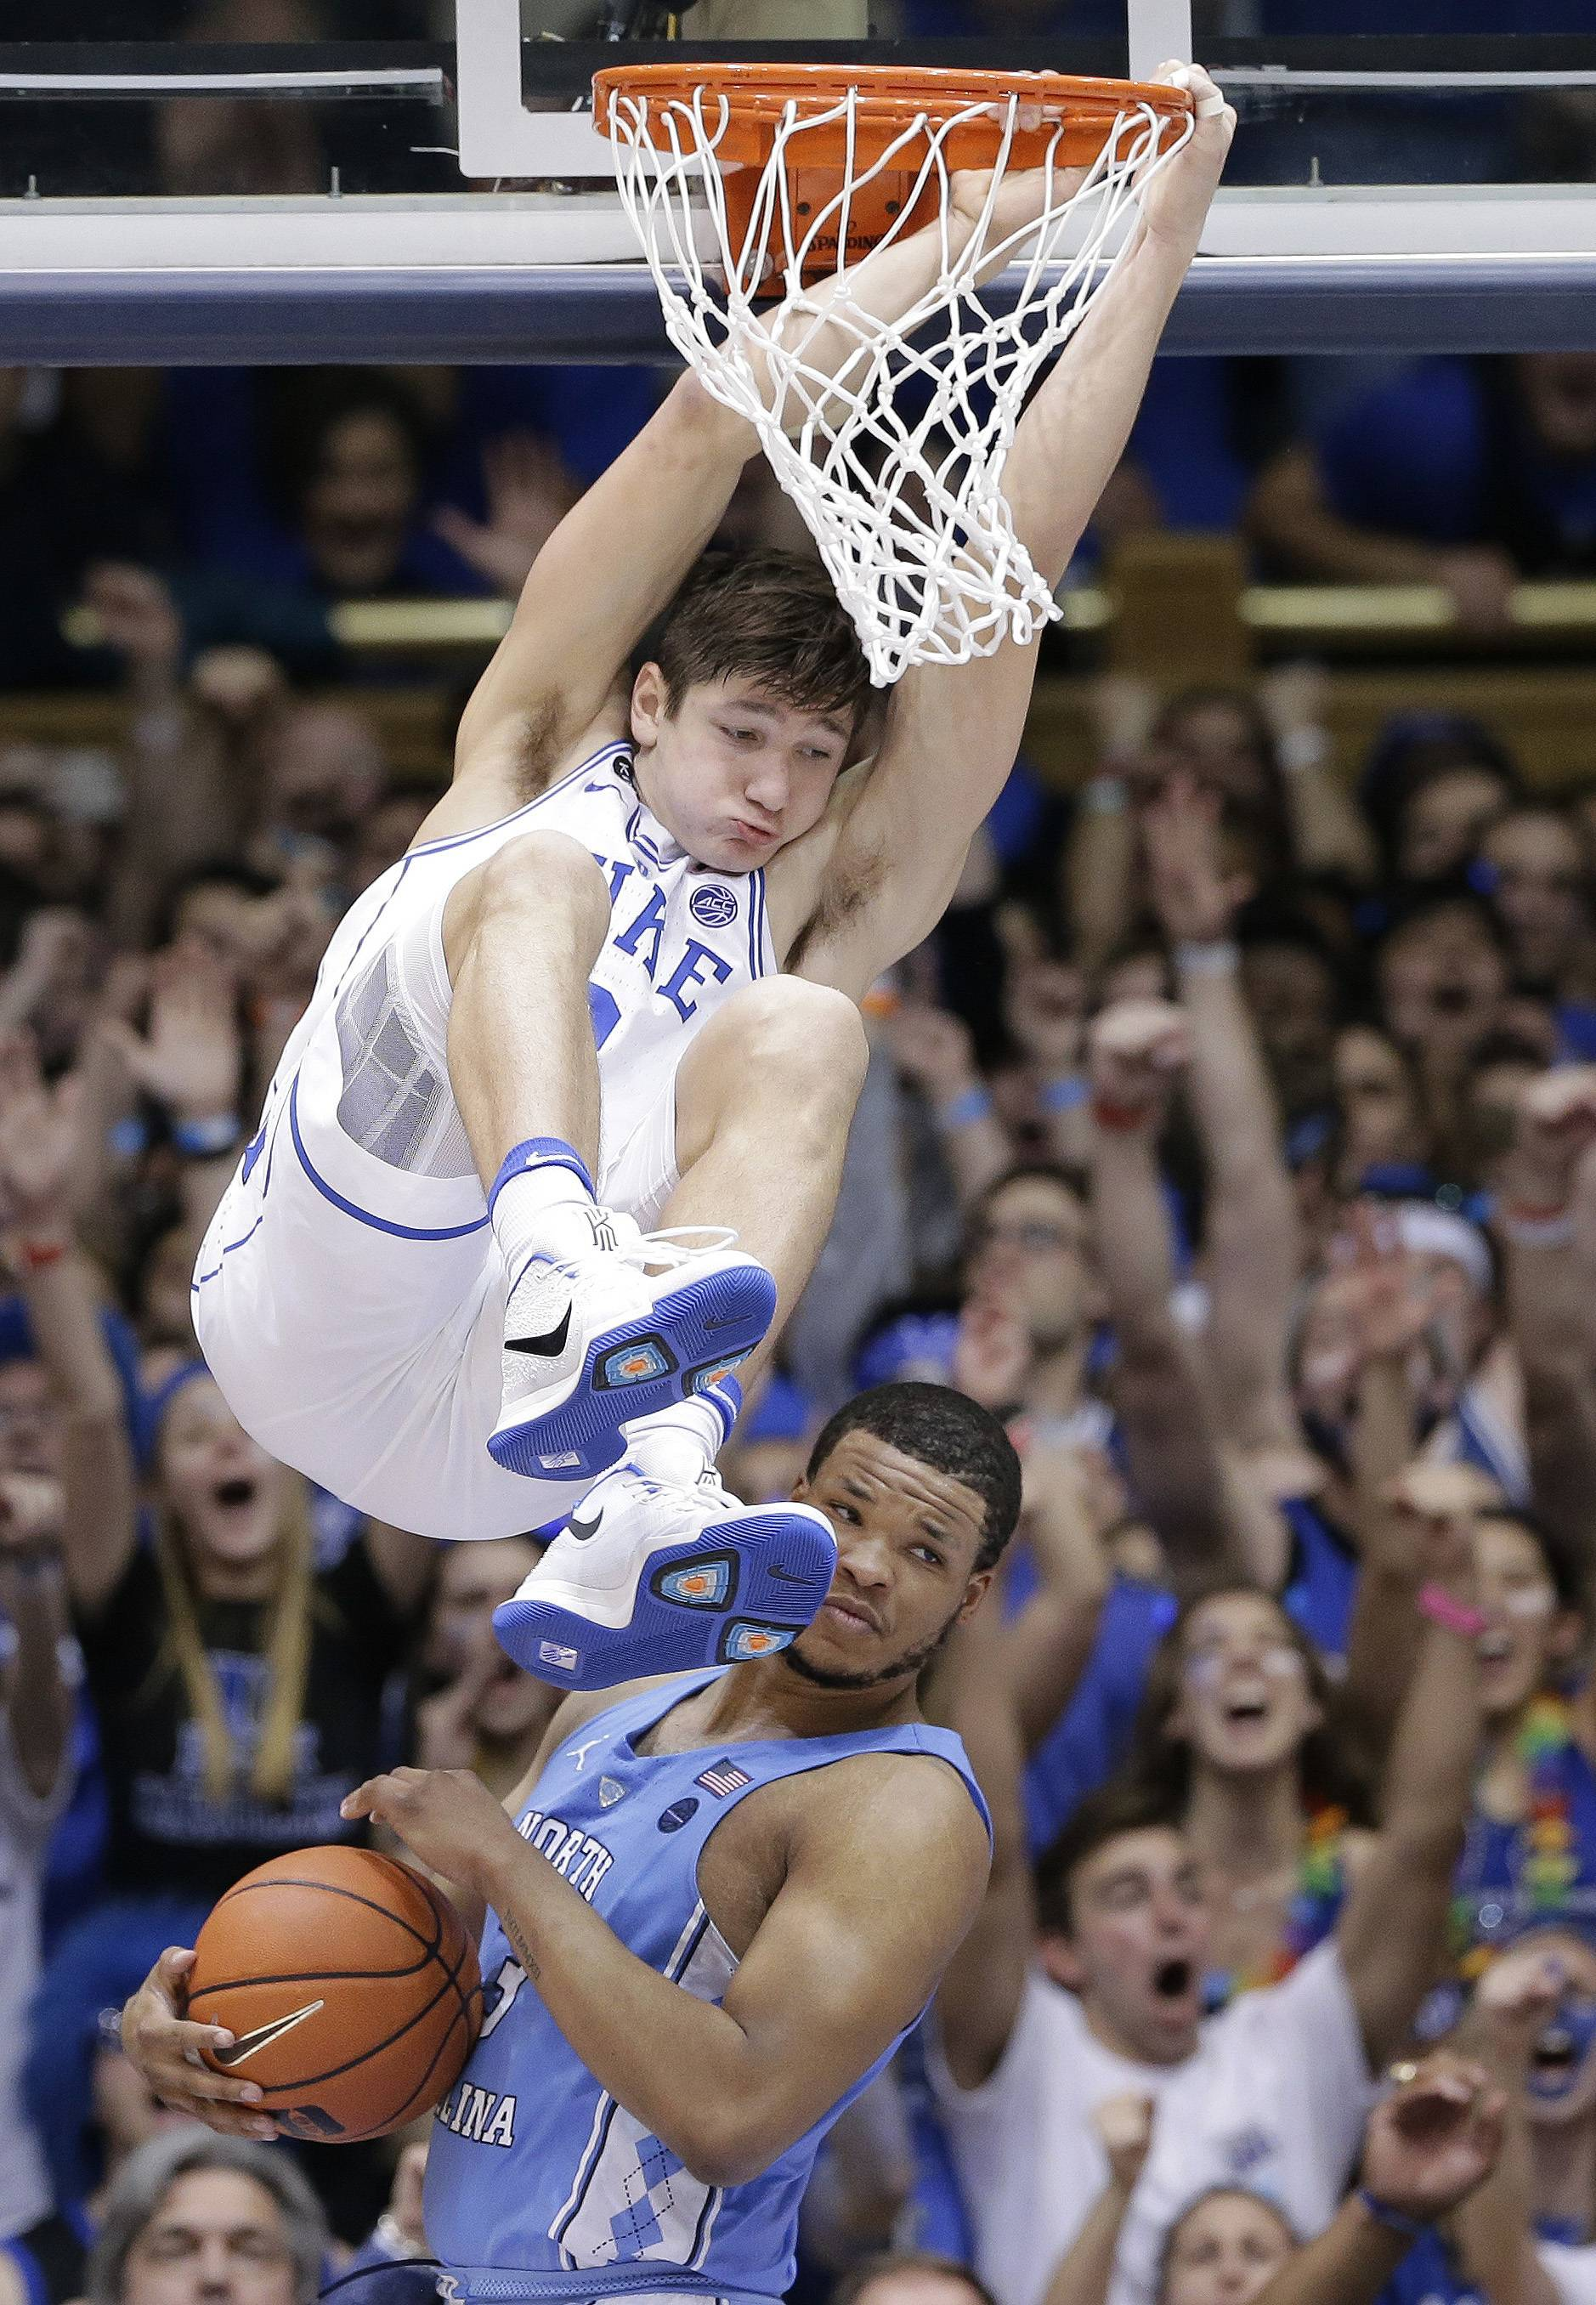 Duke chases sixth title with class of likely 1-and-dones - FederalNewsRadio.com